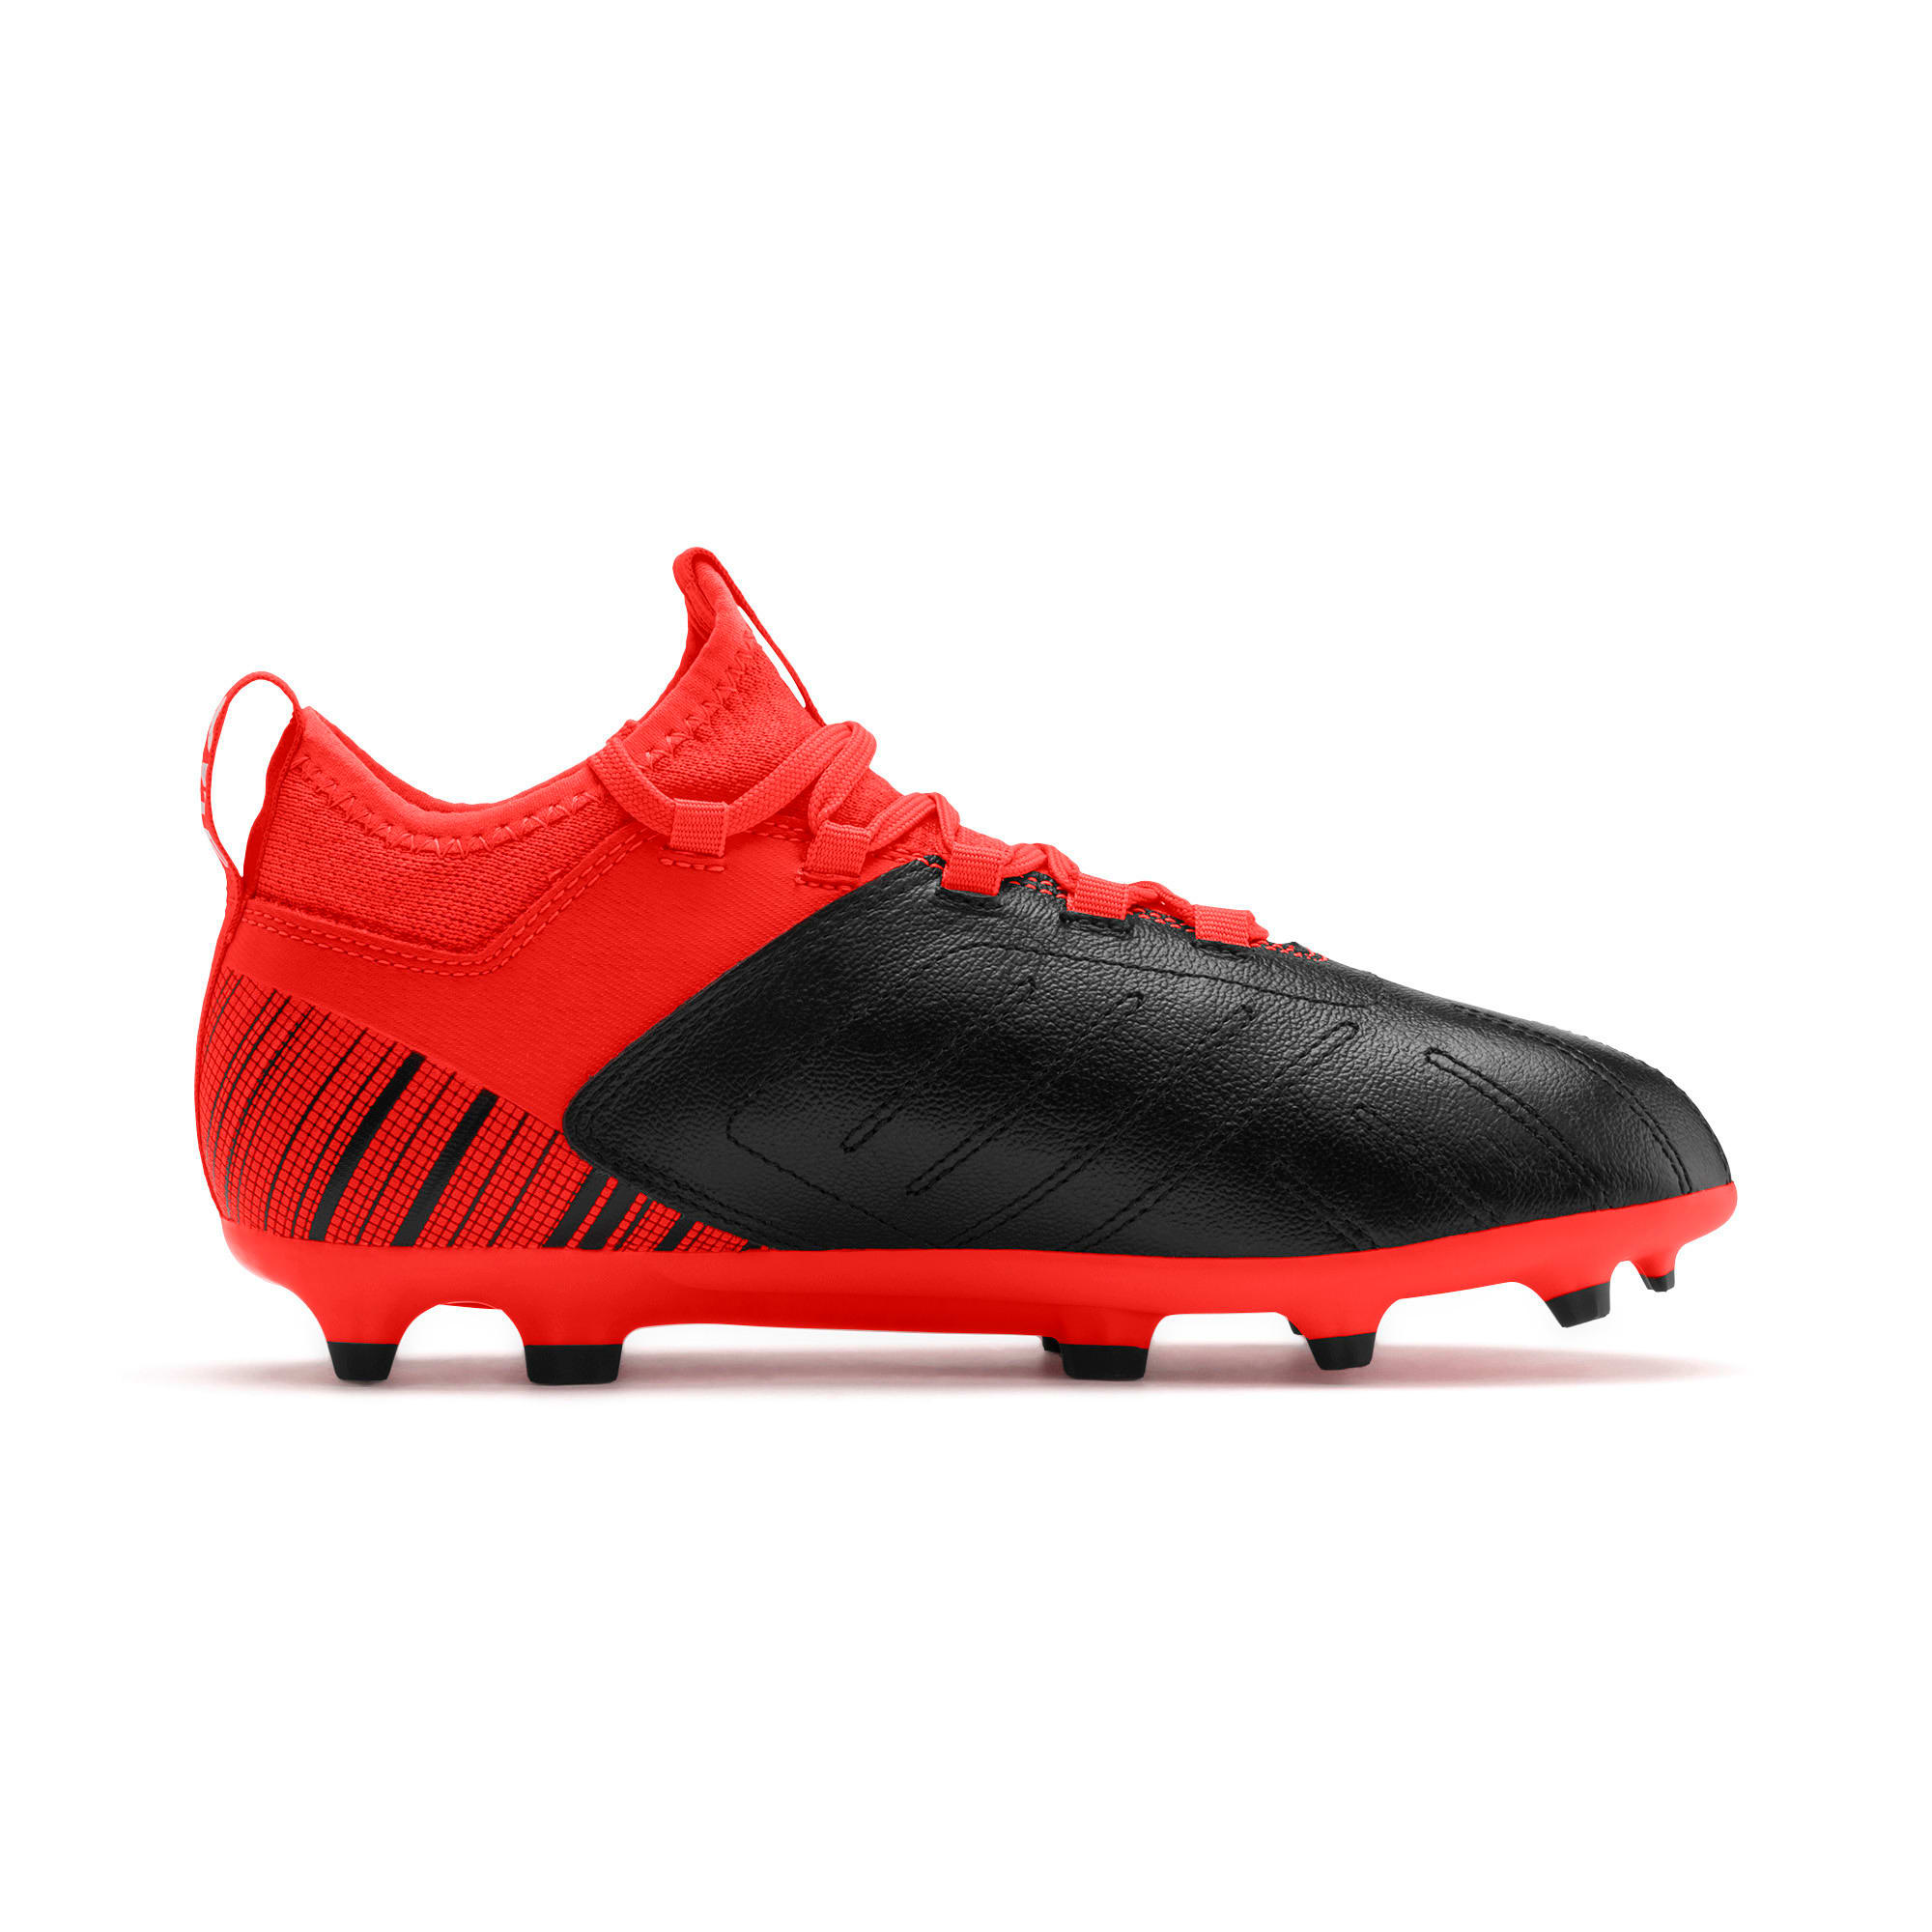 Thumbnail 5 of PUMA ONE 5.3 FG/AG Youth Fußballschuhe, Black-Nrgy Red-Aged Silver, medium